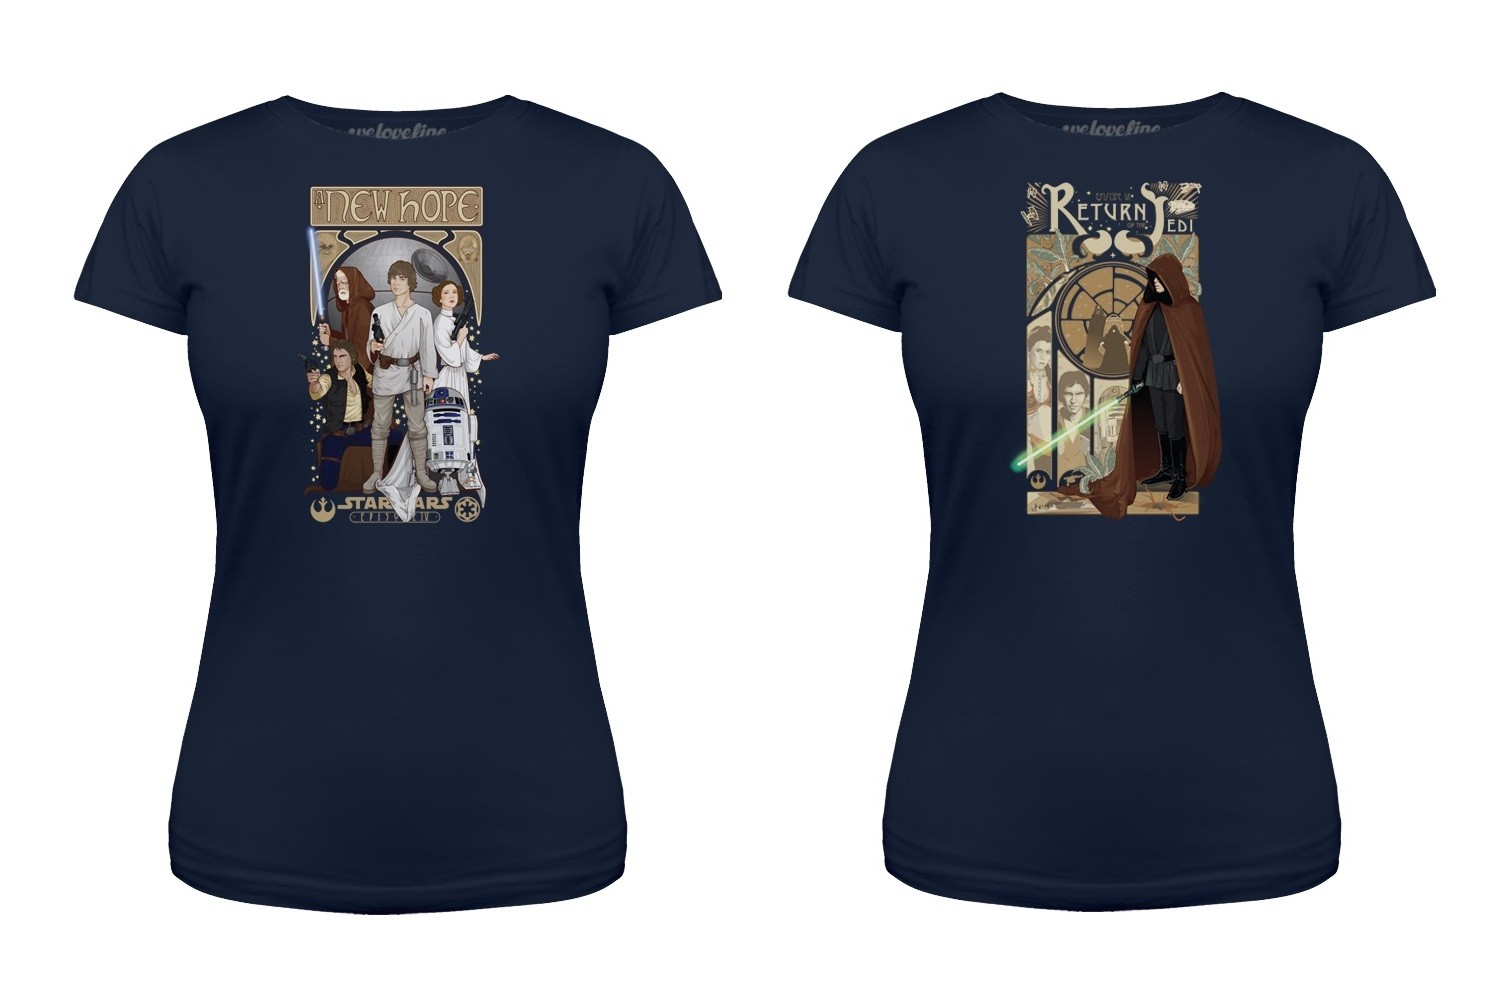 New Star Wars artwork tees at We Love Fine